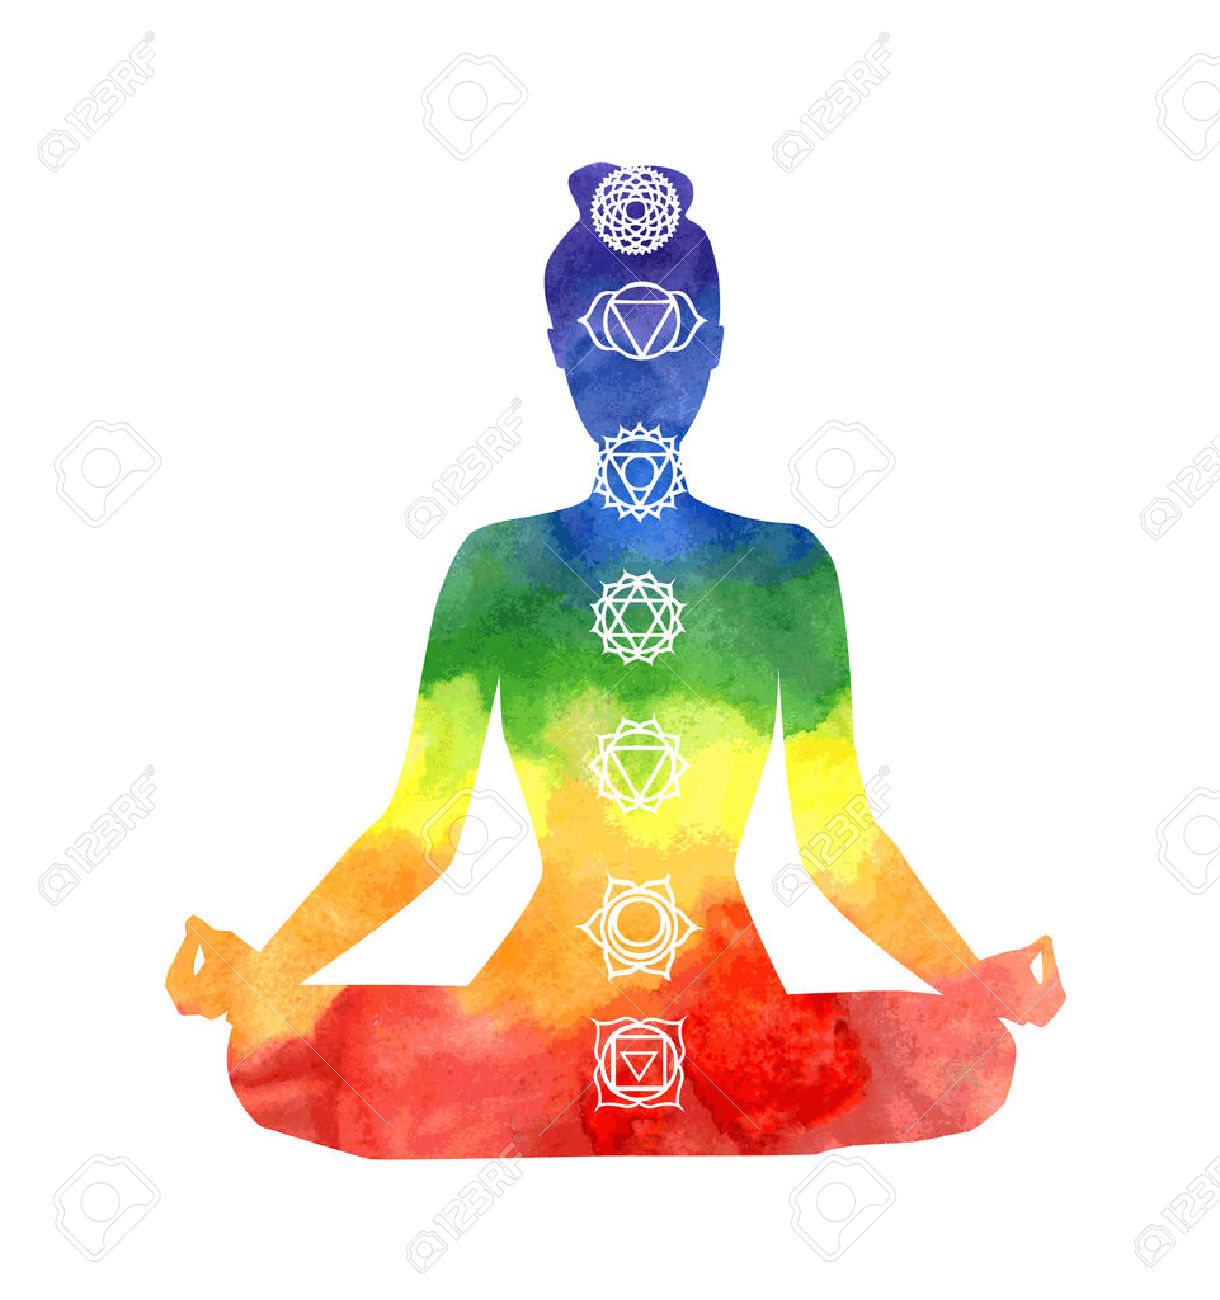 51445030-Vector-silhouette-of-yoga-woman-with-chakra-symbols-Bright-watercolor-texture-and-white-background-P-Stock-Vector